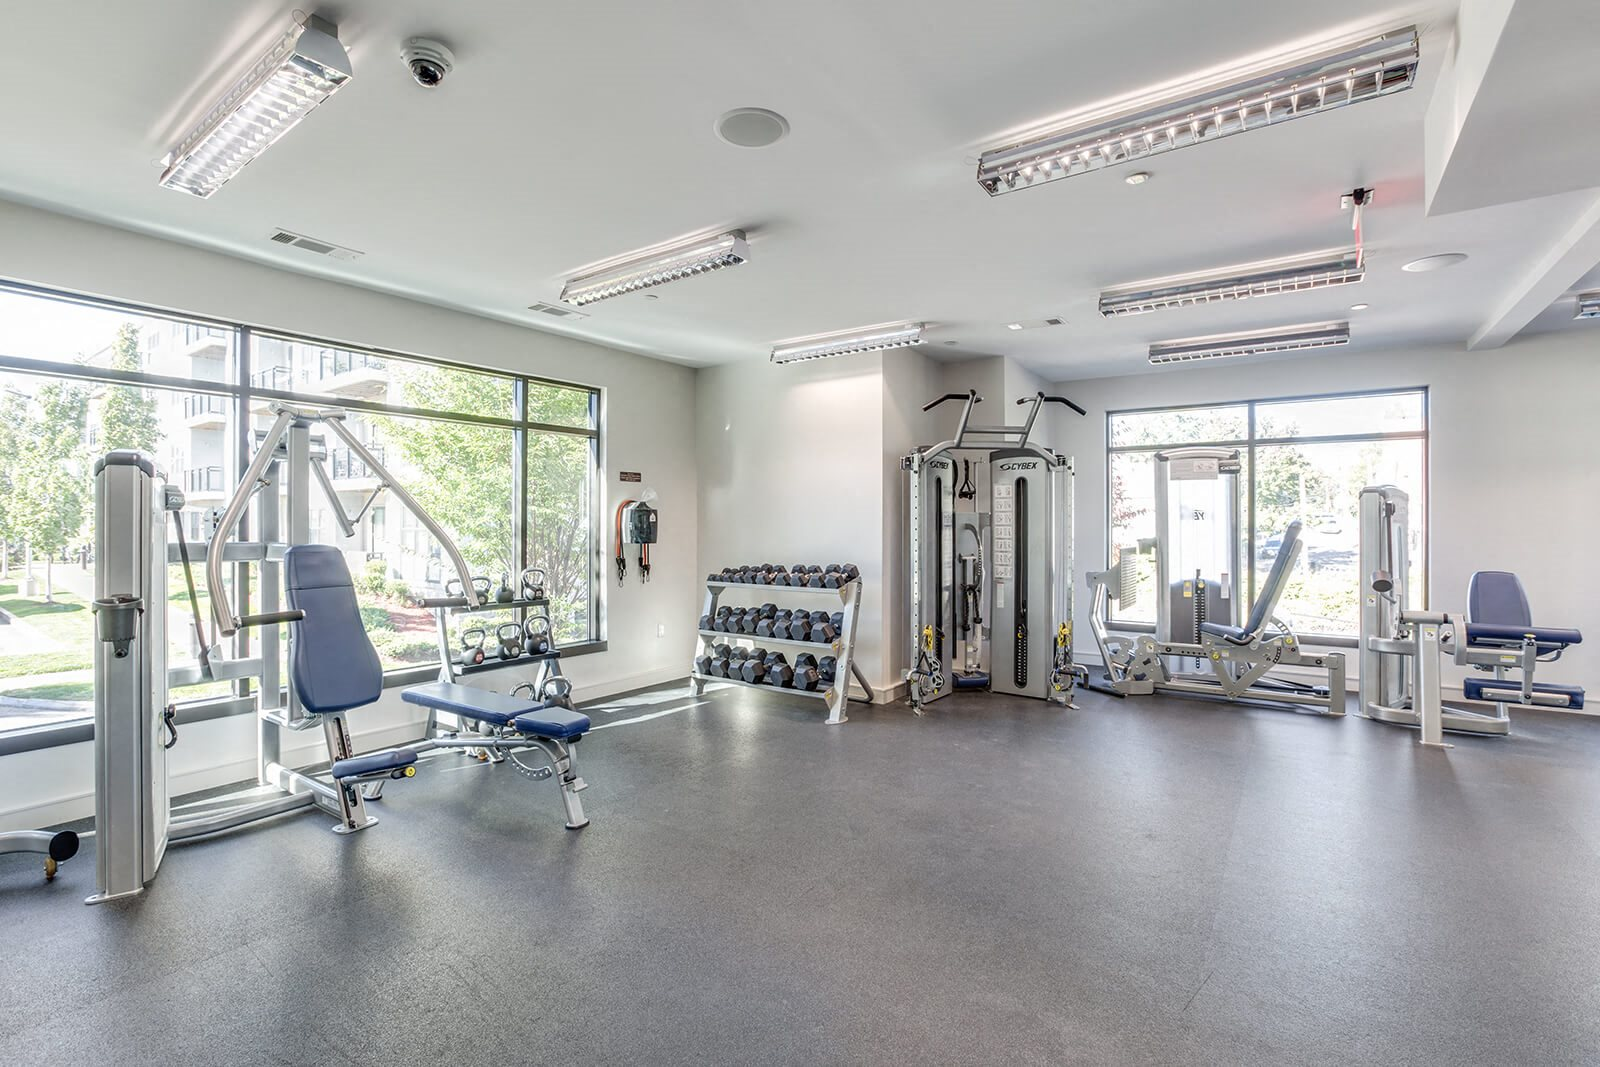 Cardio, Strength, and Free Weight Equipment in Fitness Center at Windsor at Maxwells Green, Massachusetts, 02144